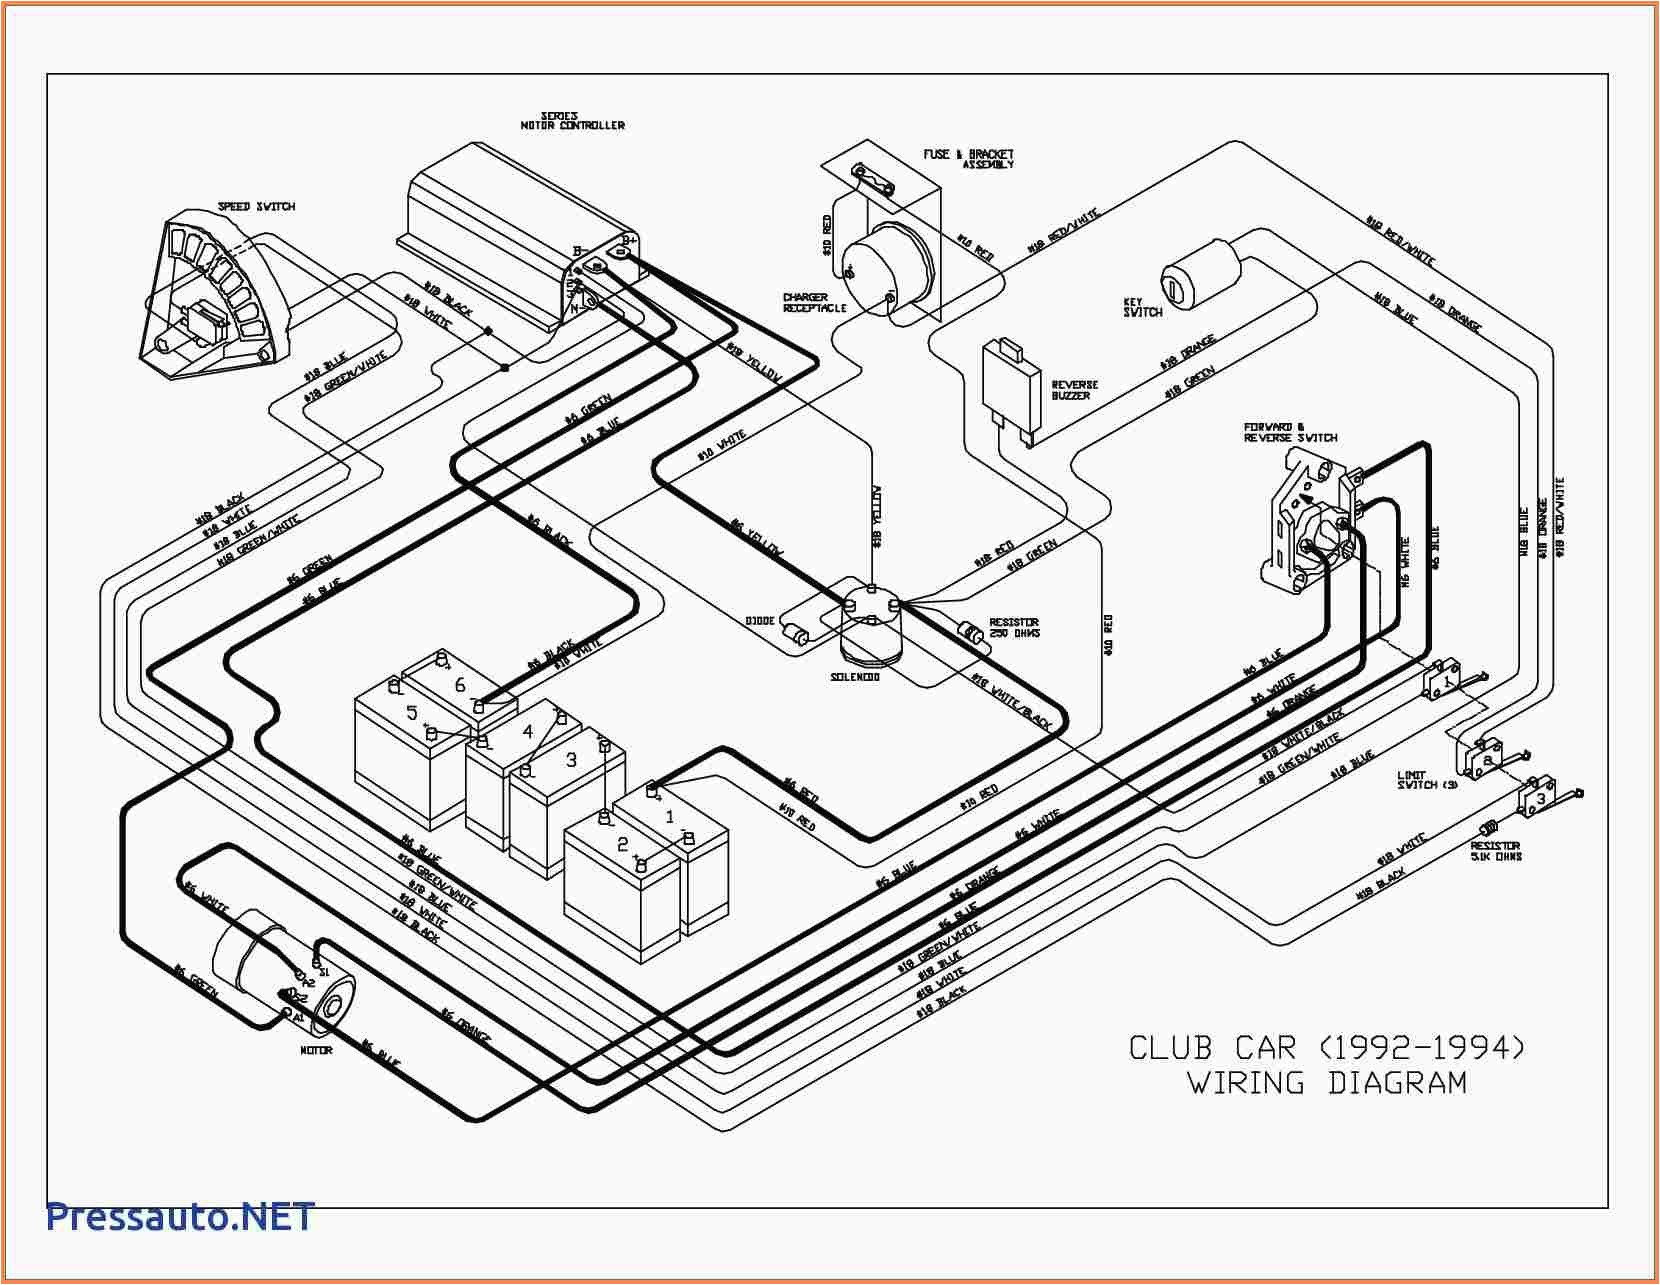 club car golf cart wiring diagram unique unique club car wiring diagram 36 volt wiring of club car golf cart wiring diagram with club car wiring diagram jpg